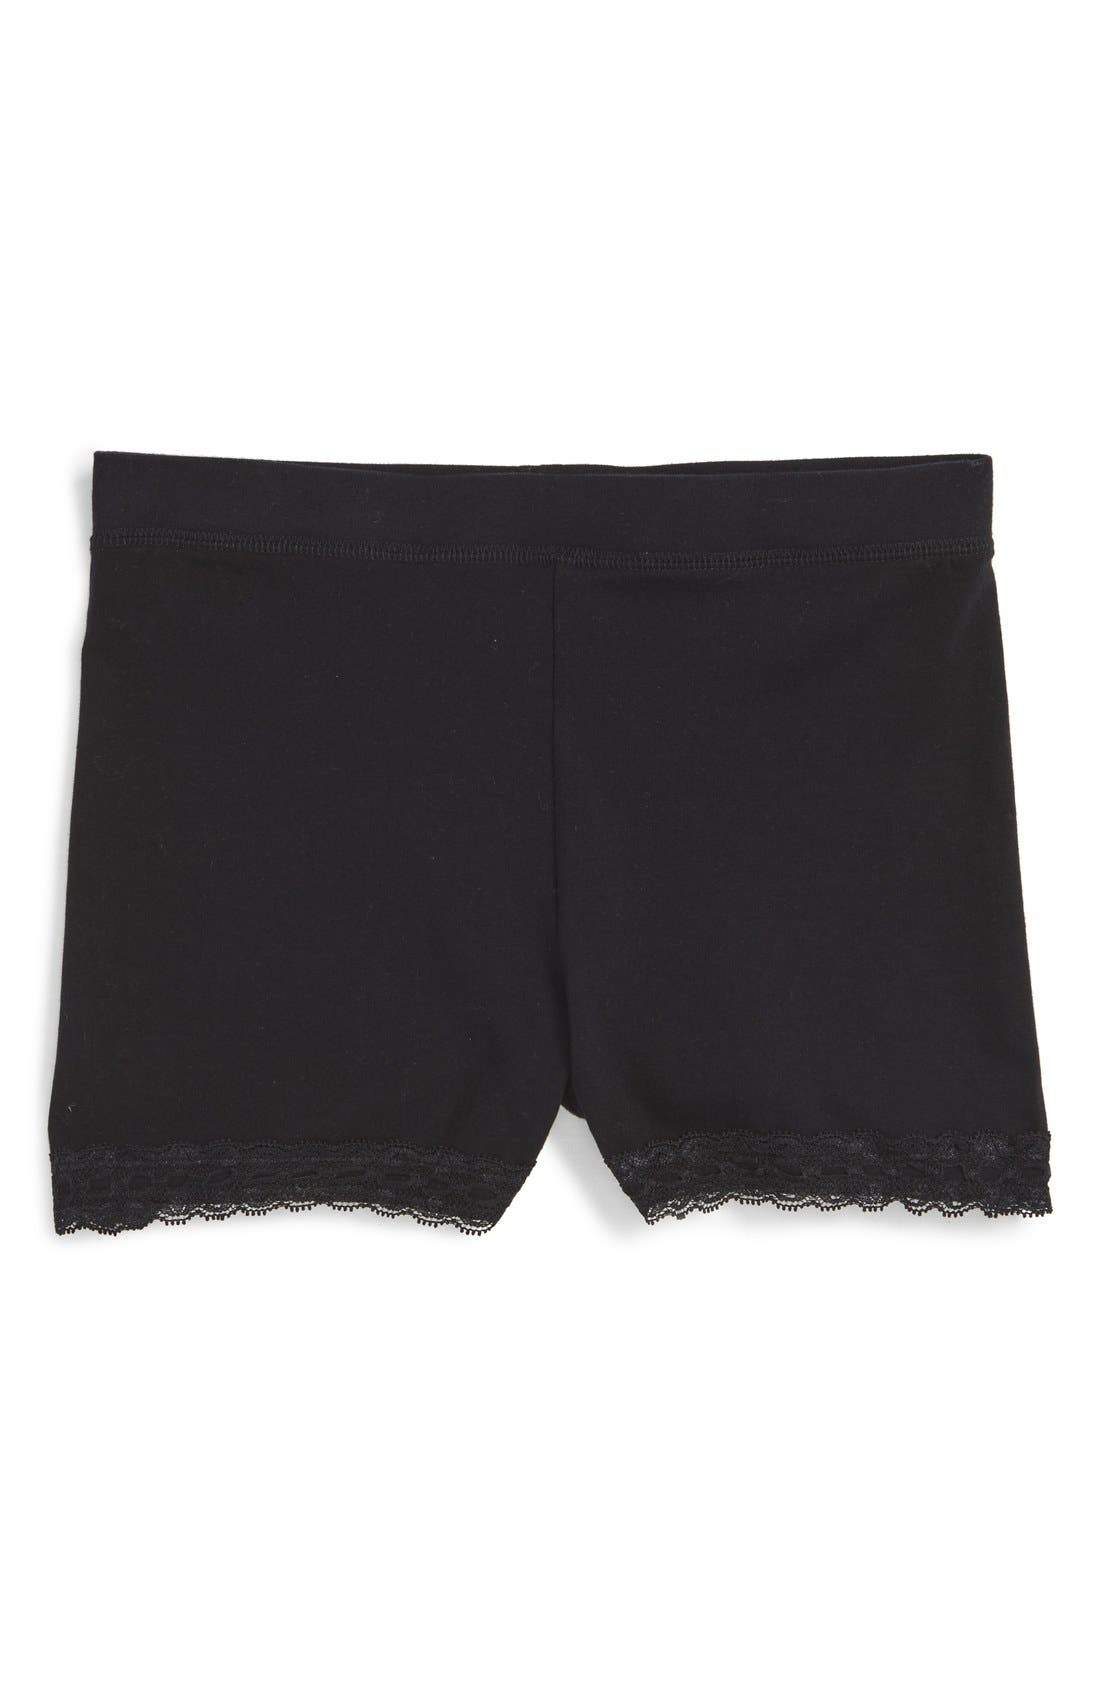 Lace Trim Bike Shorts,                             Main thumbnail 1, color,                             BLACK